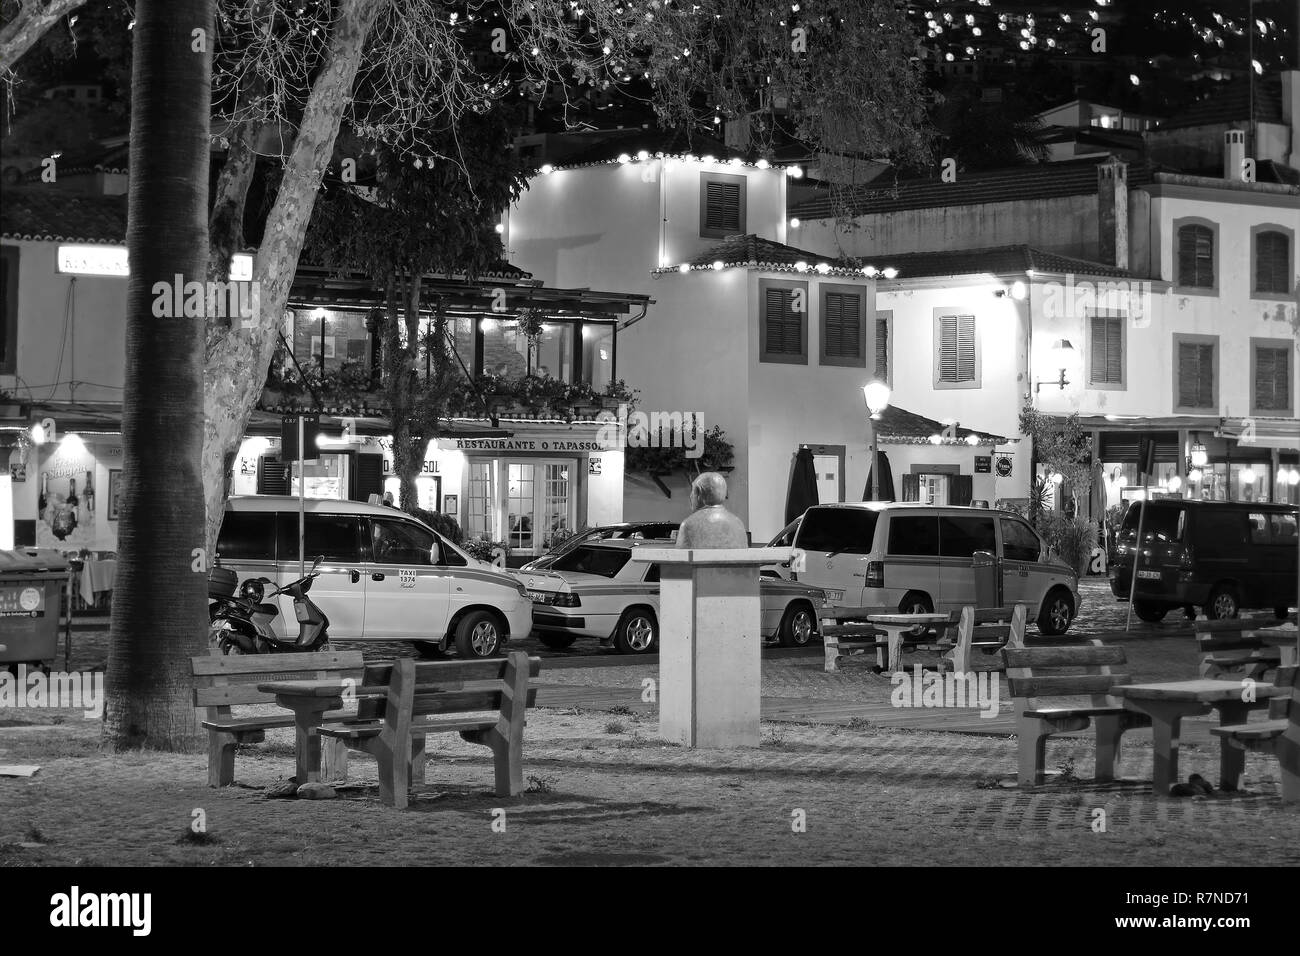 Night photography in the old city of Funchal auf Madeira - Stock Image